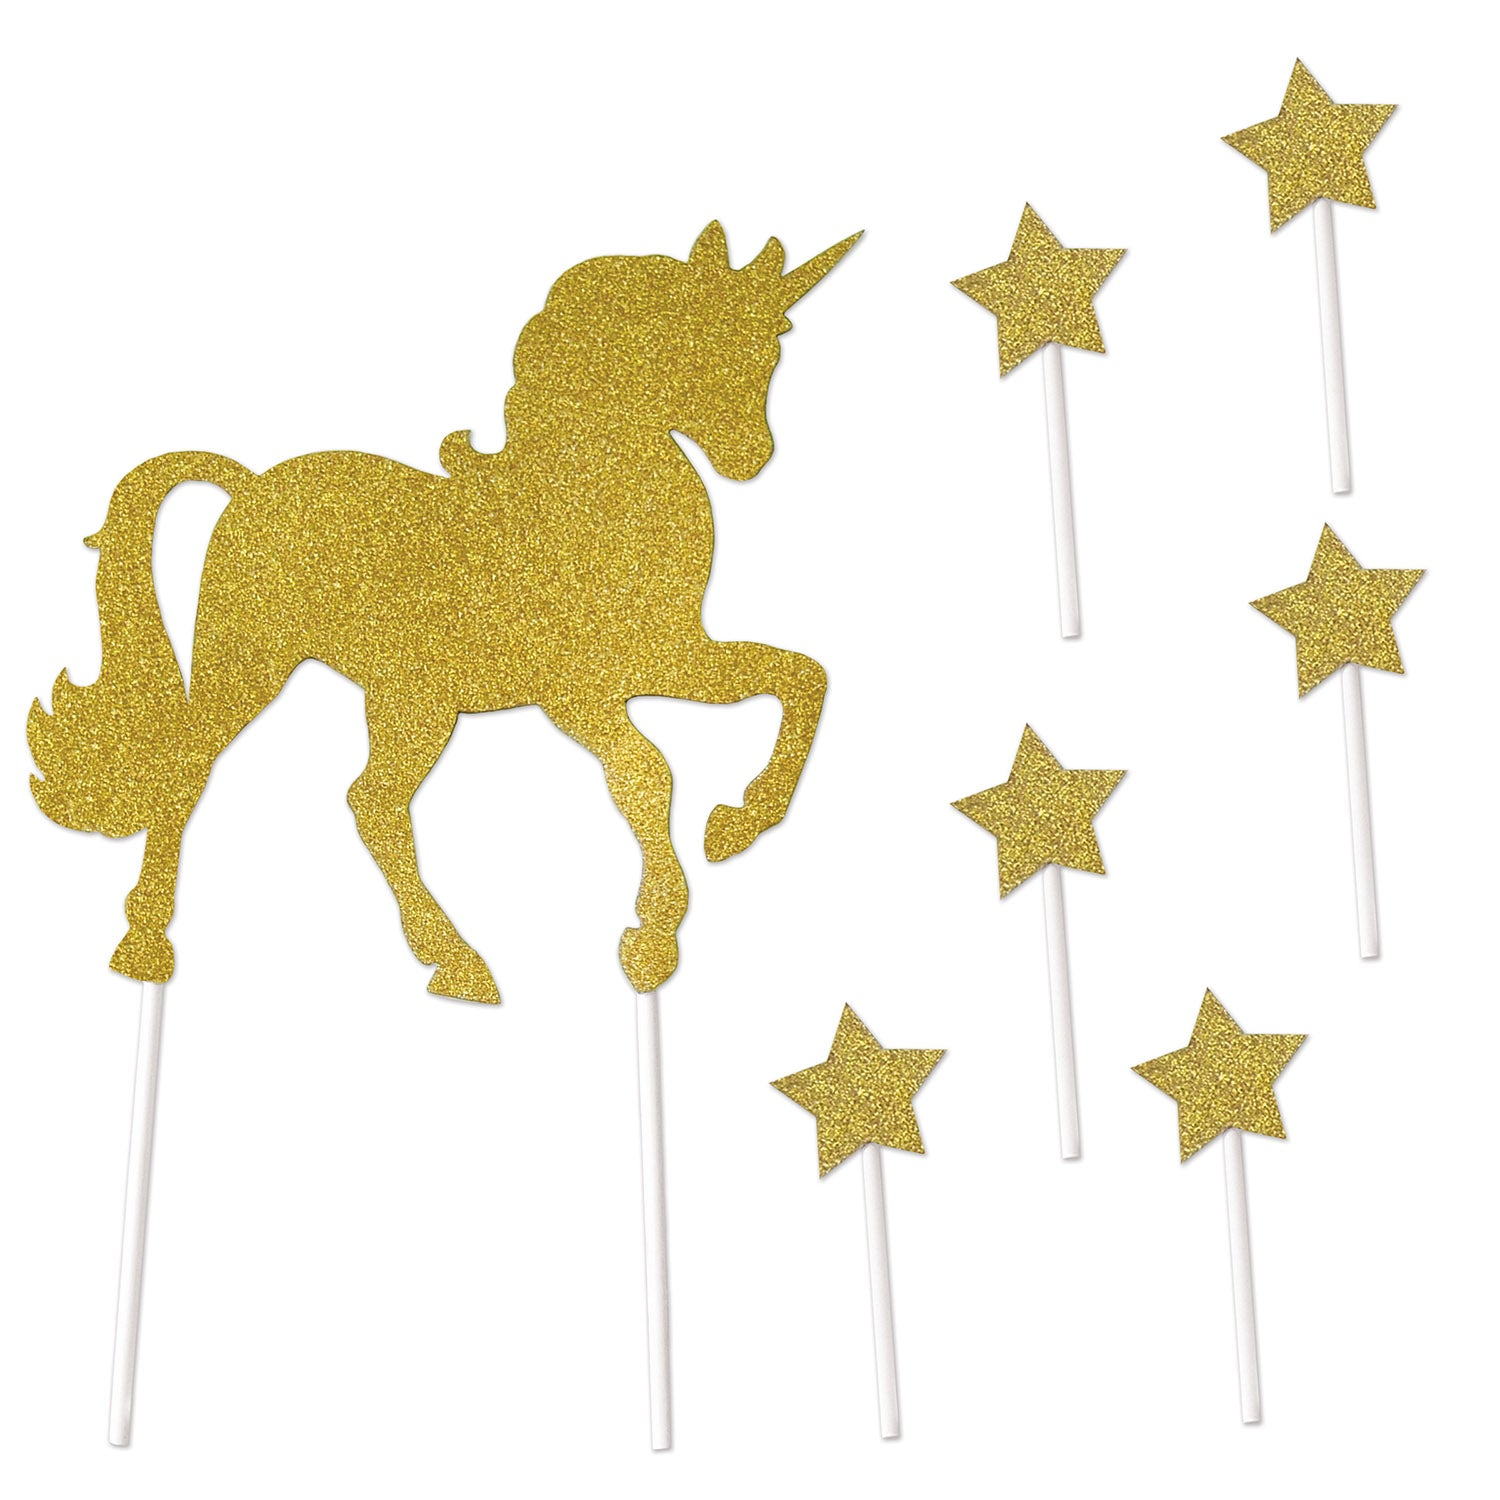 Unicorn Cake Topper by Beistle - Unicorn Theme Decorations